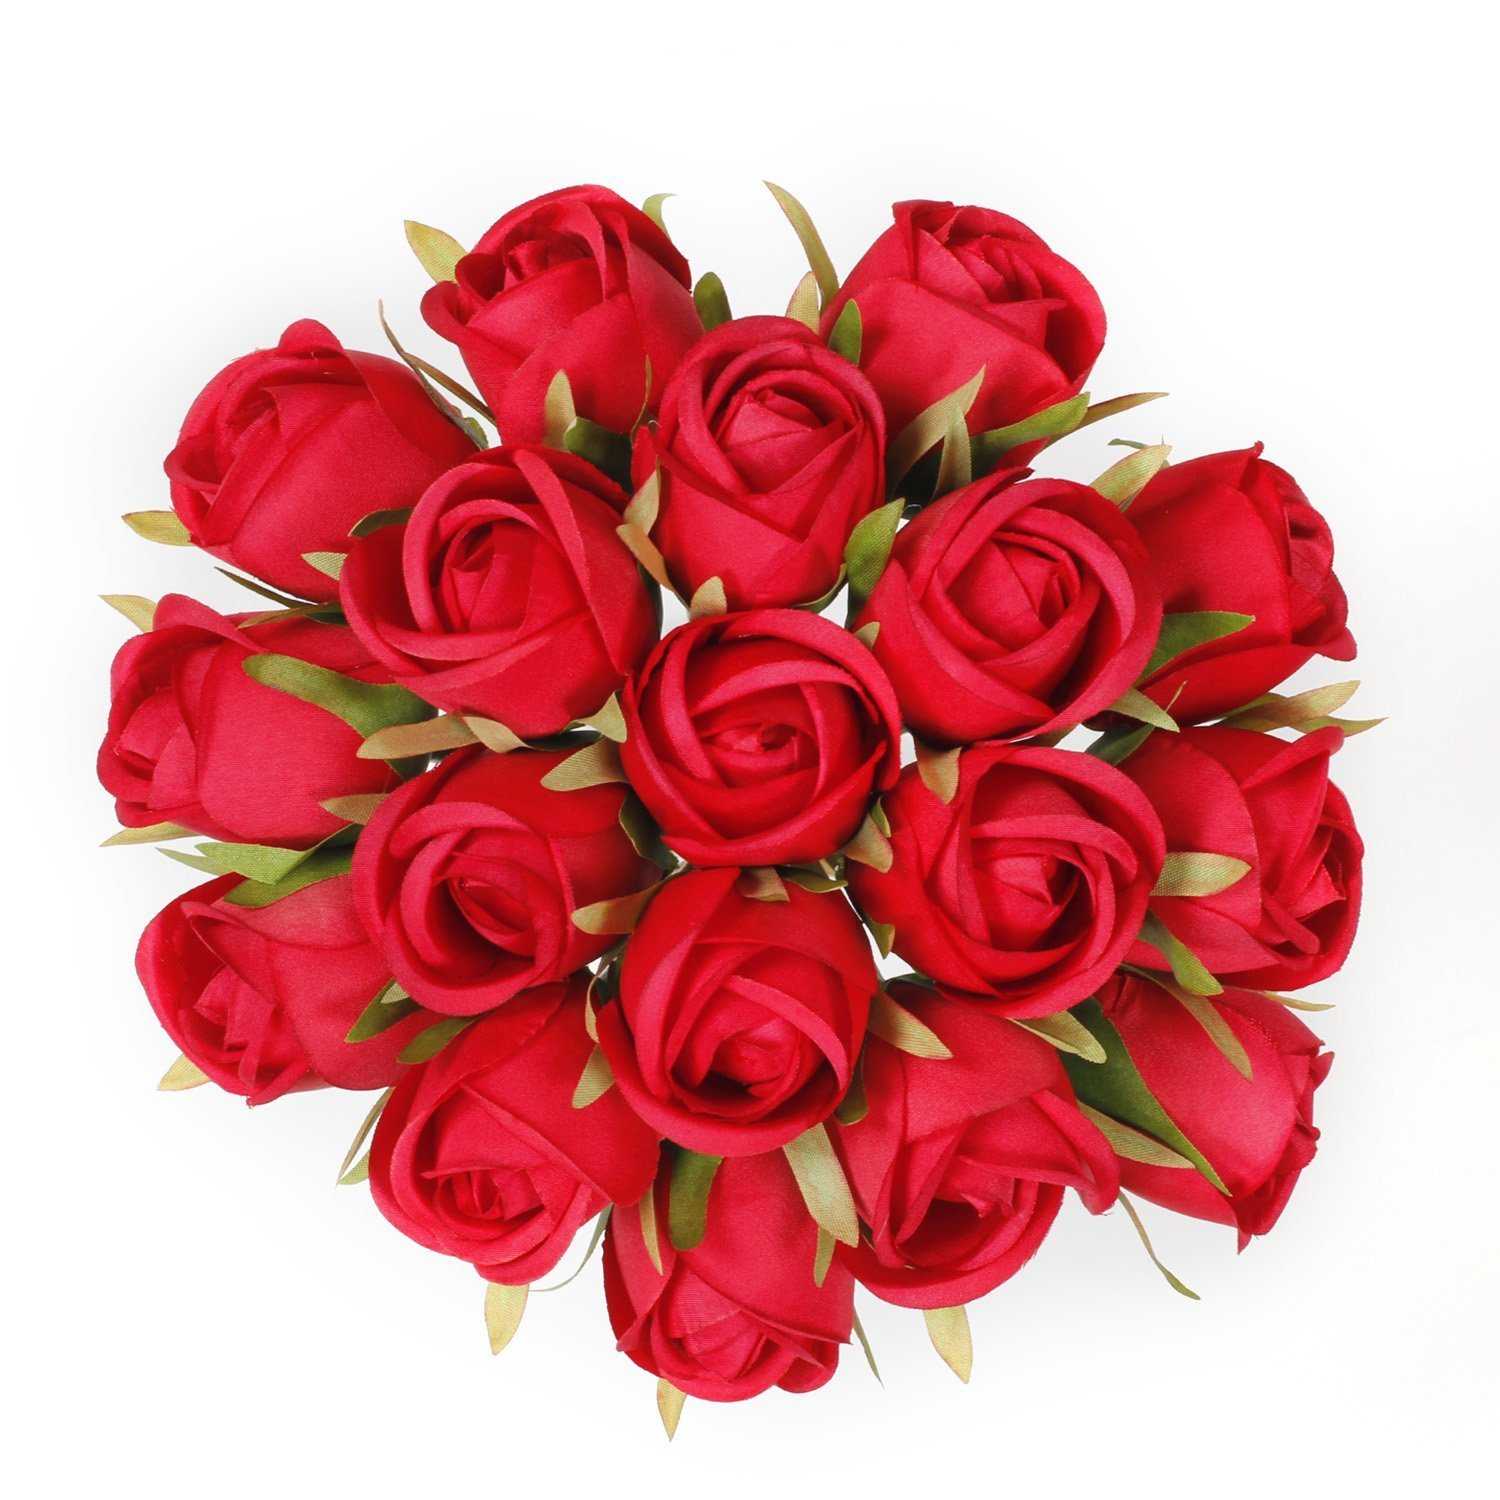 EPCTEK Red Silk Roses Faux Silk Roses Flowers 18pcs Bridal Roses Bouquets for Wedding Home Garden Party Decoration(Red)